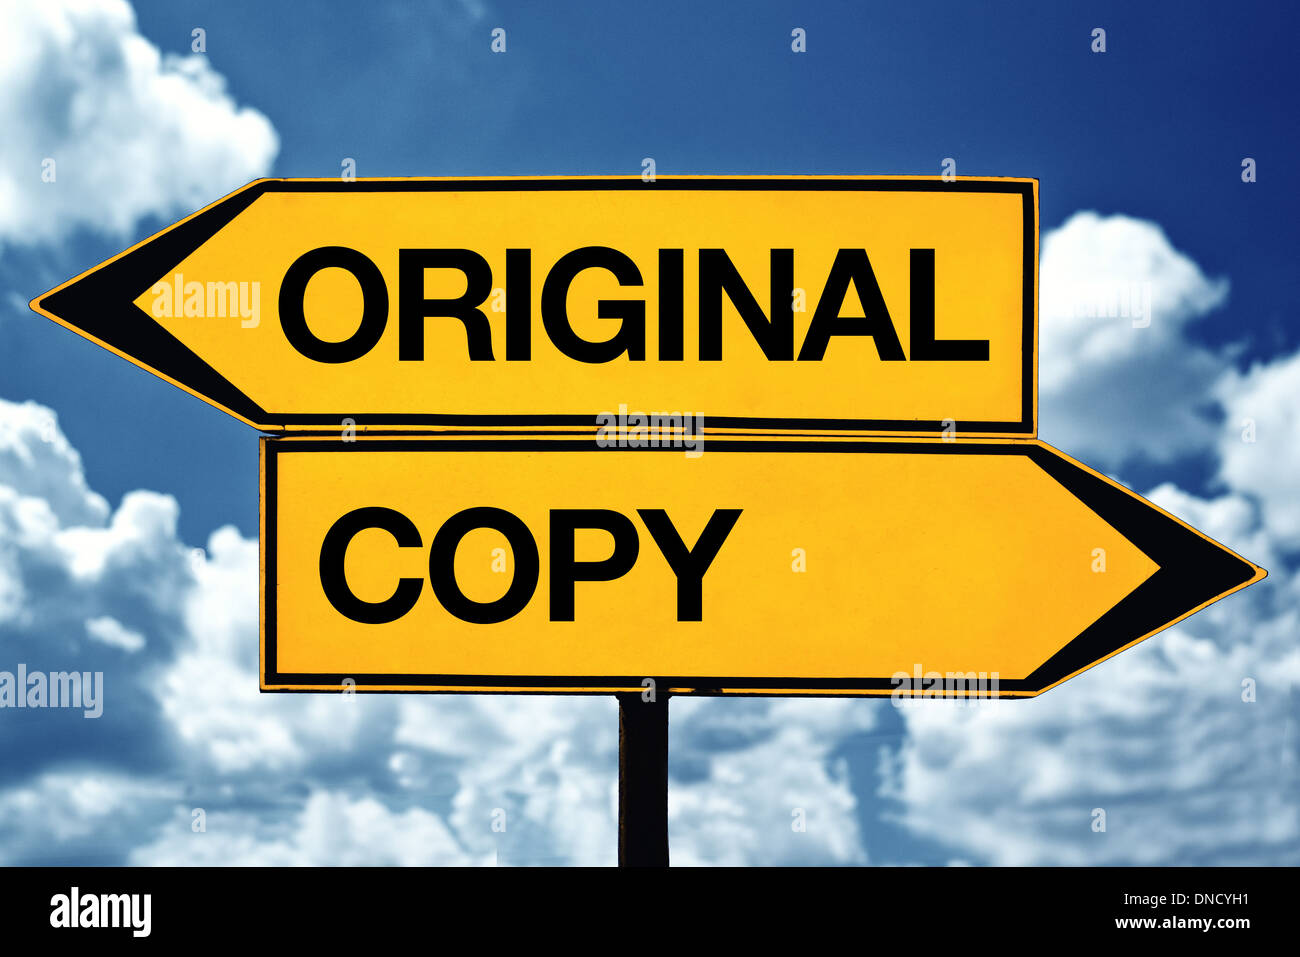 original or copy title on opposite direction street sign - Stock Image